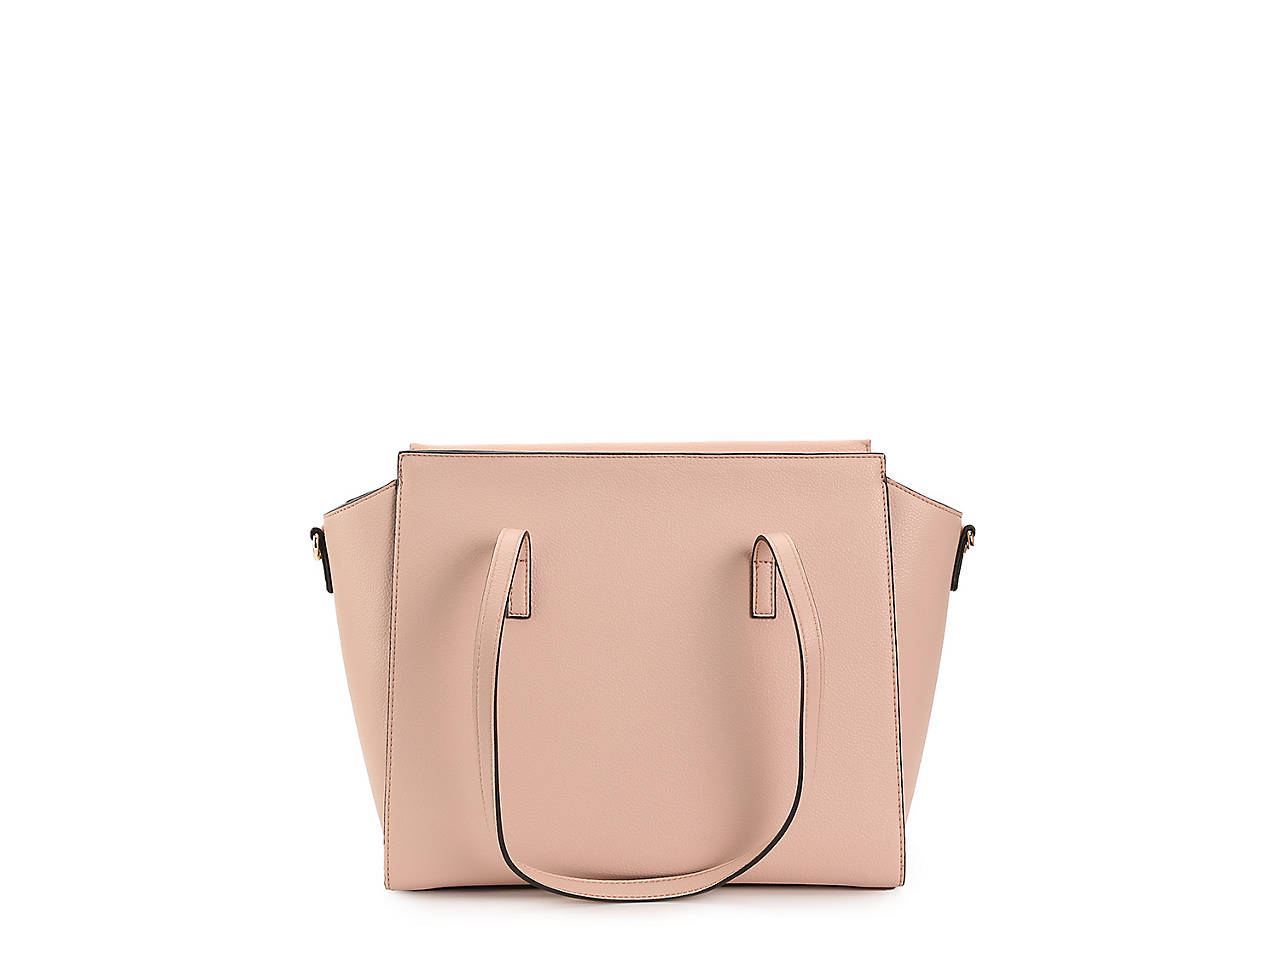 f44b3fcc004 Home · Women's Handbags · Tote; Elaycien Tote. previous